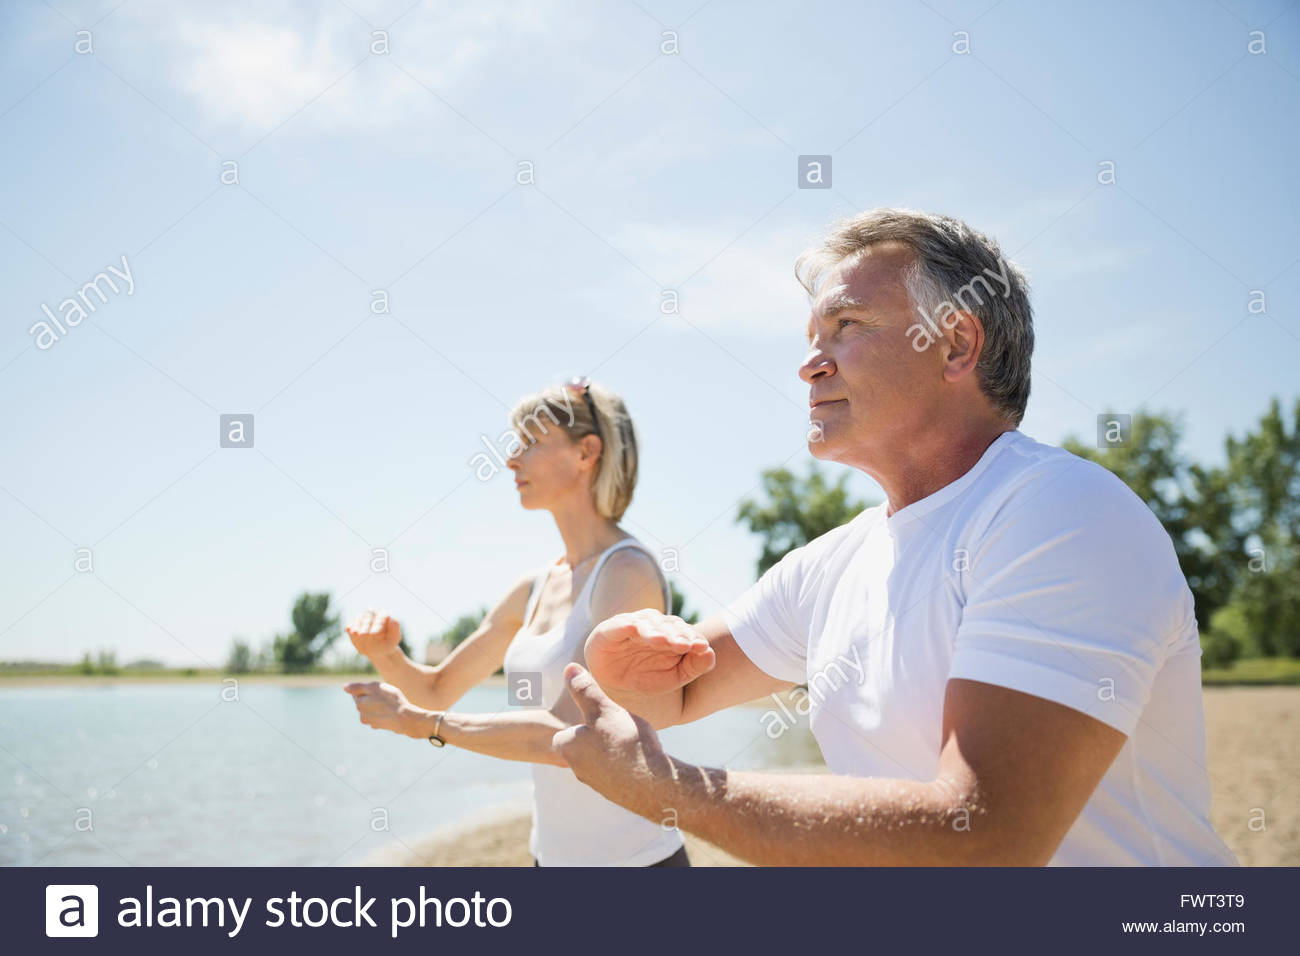 Middle-aged couple performing tai chi on beach - Stock Image